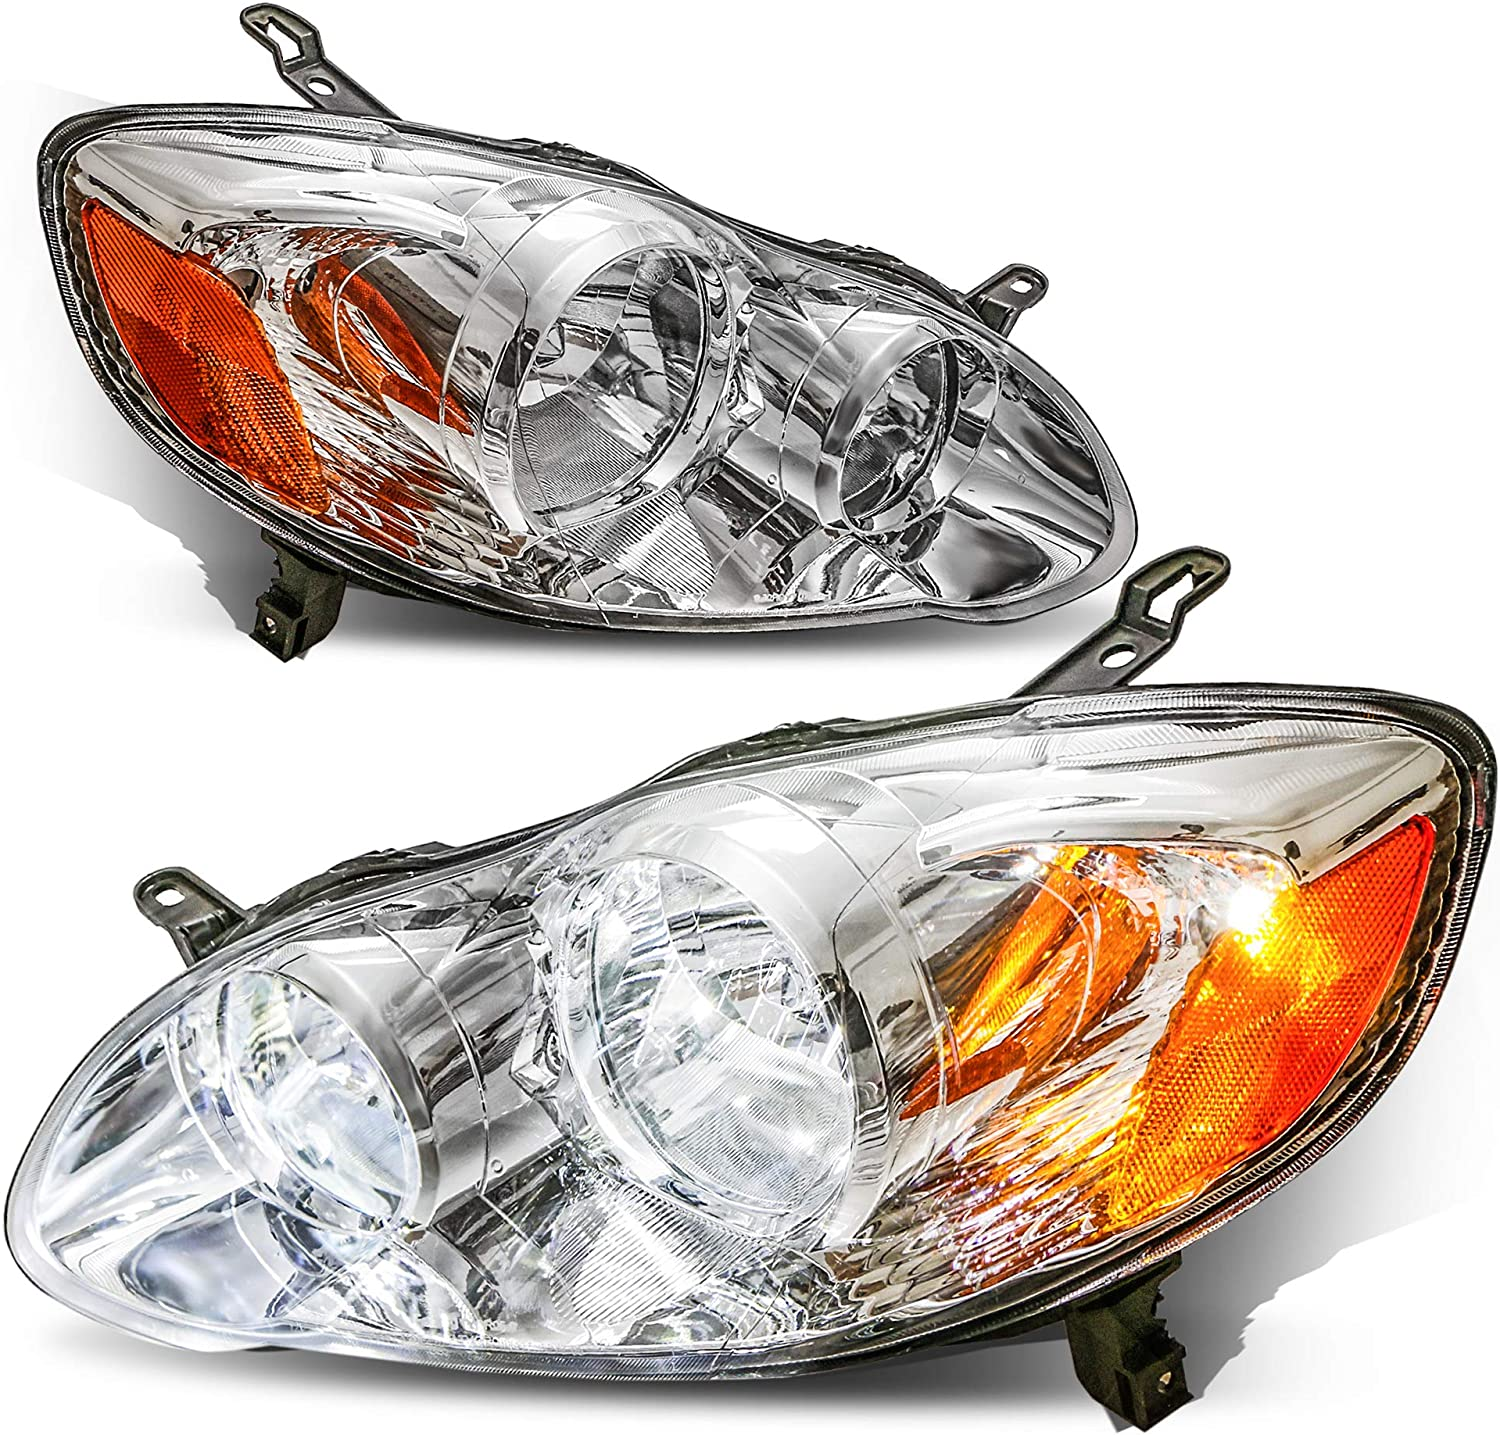 Set of 2 Chrome Housing with Amber Reflector Front Lamp MOSTPLUS Headlight Assembly Compatible with 2003 2004 2005 2006 2007 2008 Toyota Corolla